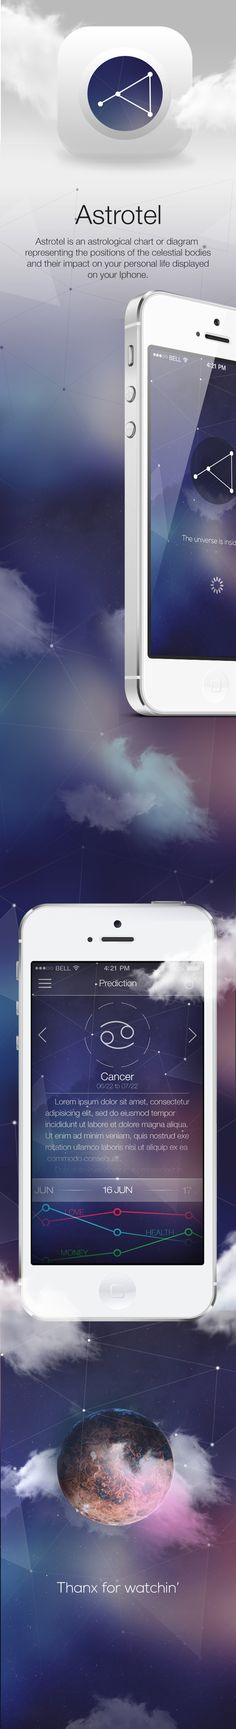 Astrotel on Behance